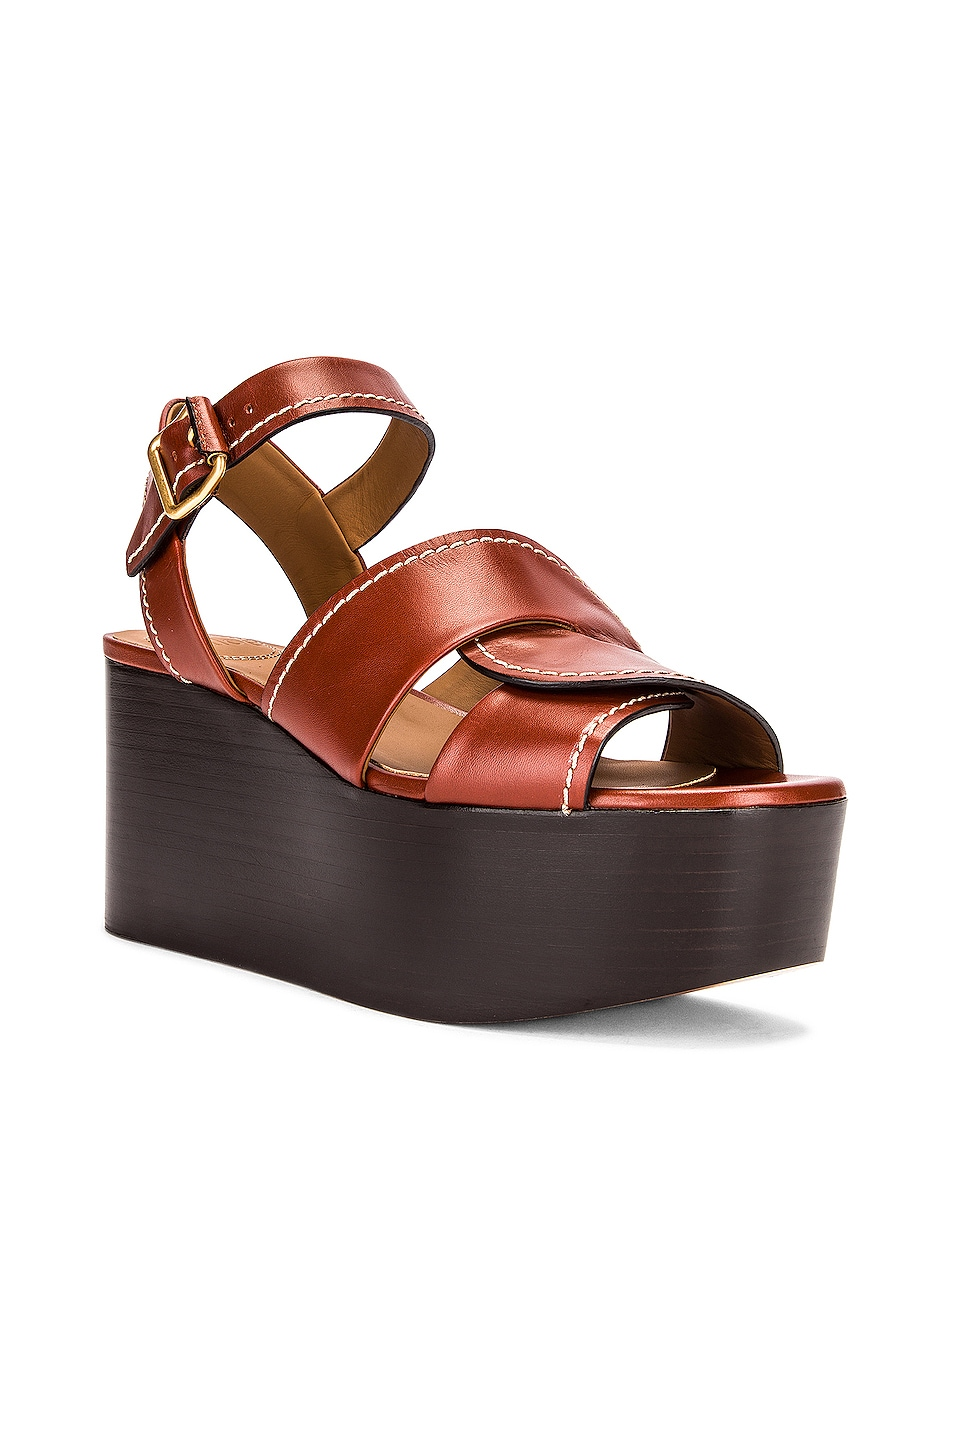 Image 2 of Chloe Candice Platform Sandals in Sepia Brown